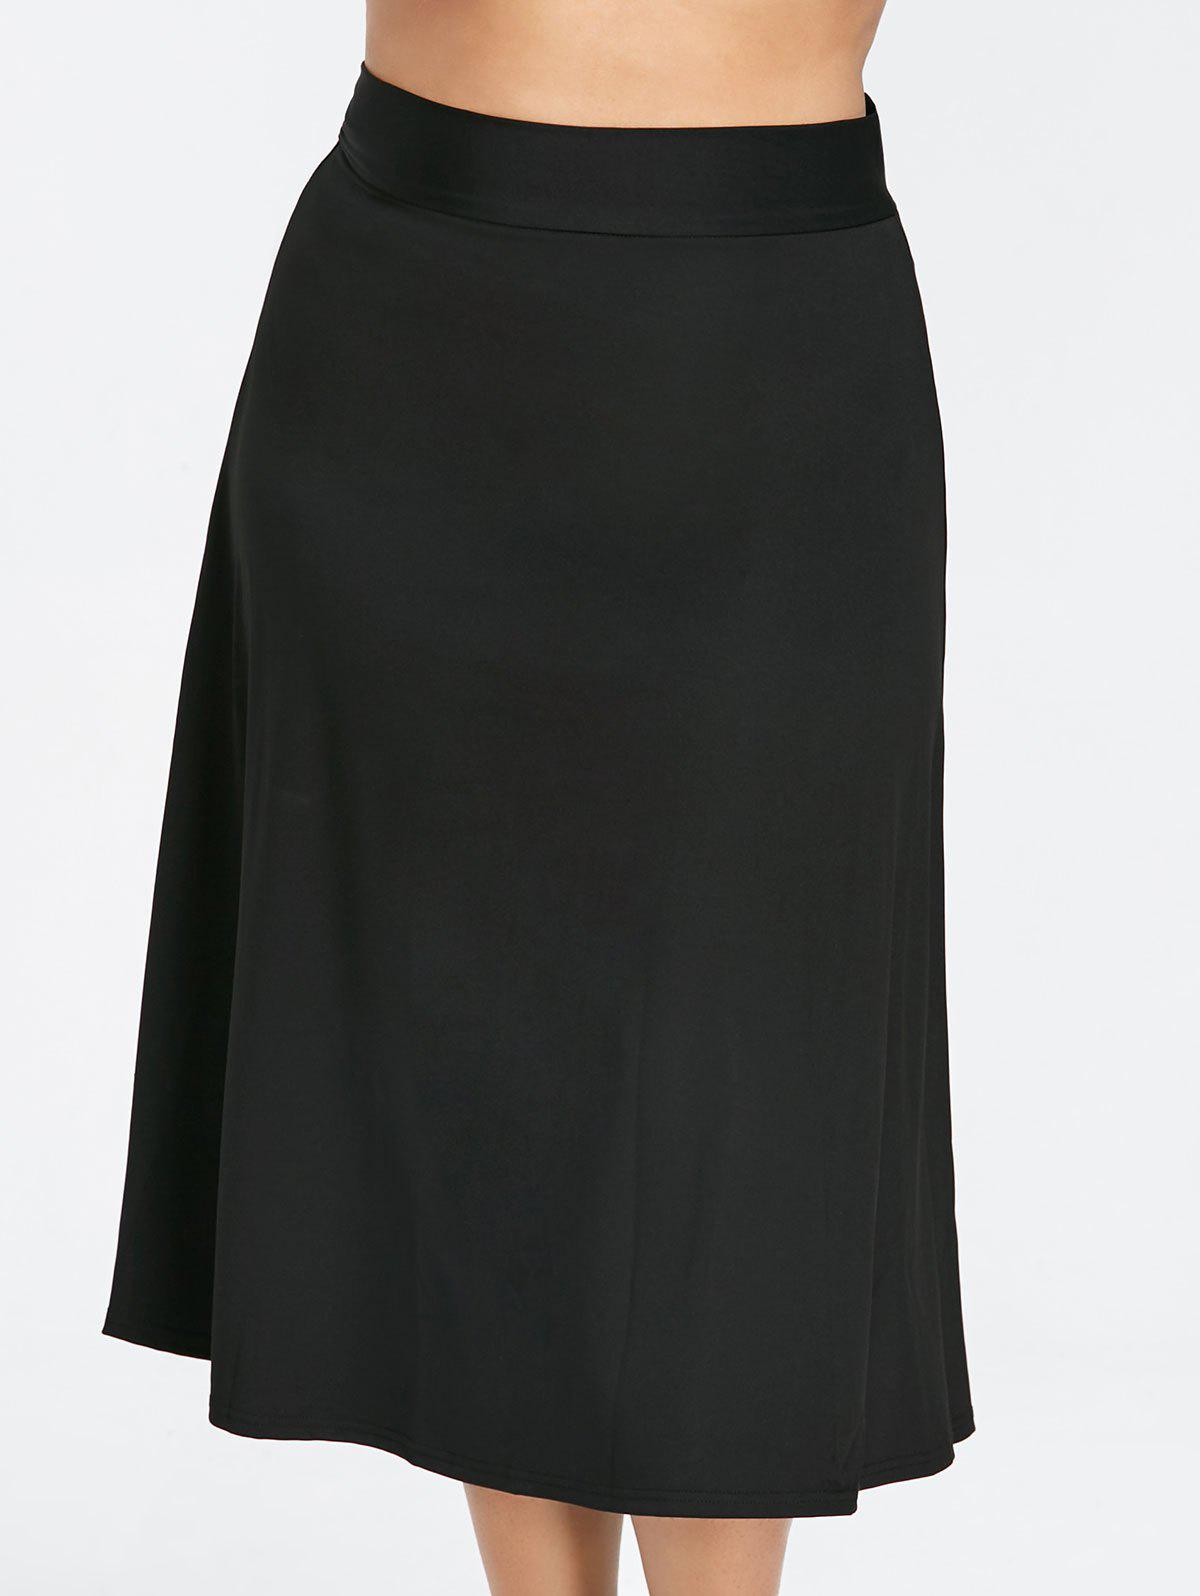 High Waisted Plus Size Midi skirt high waisted bodycon midi skirt